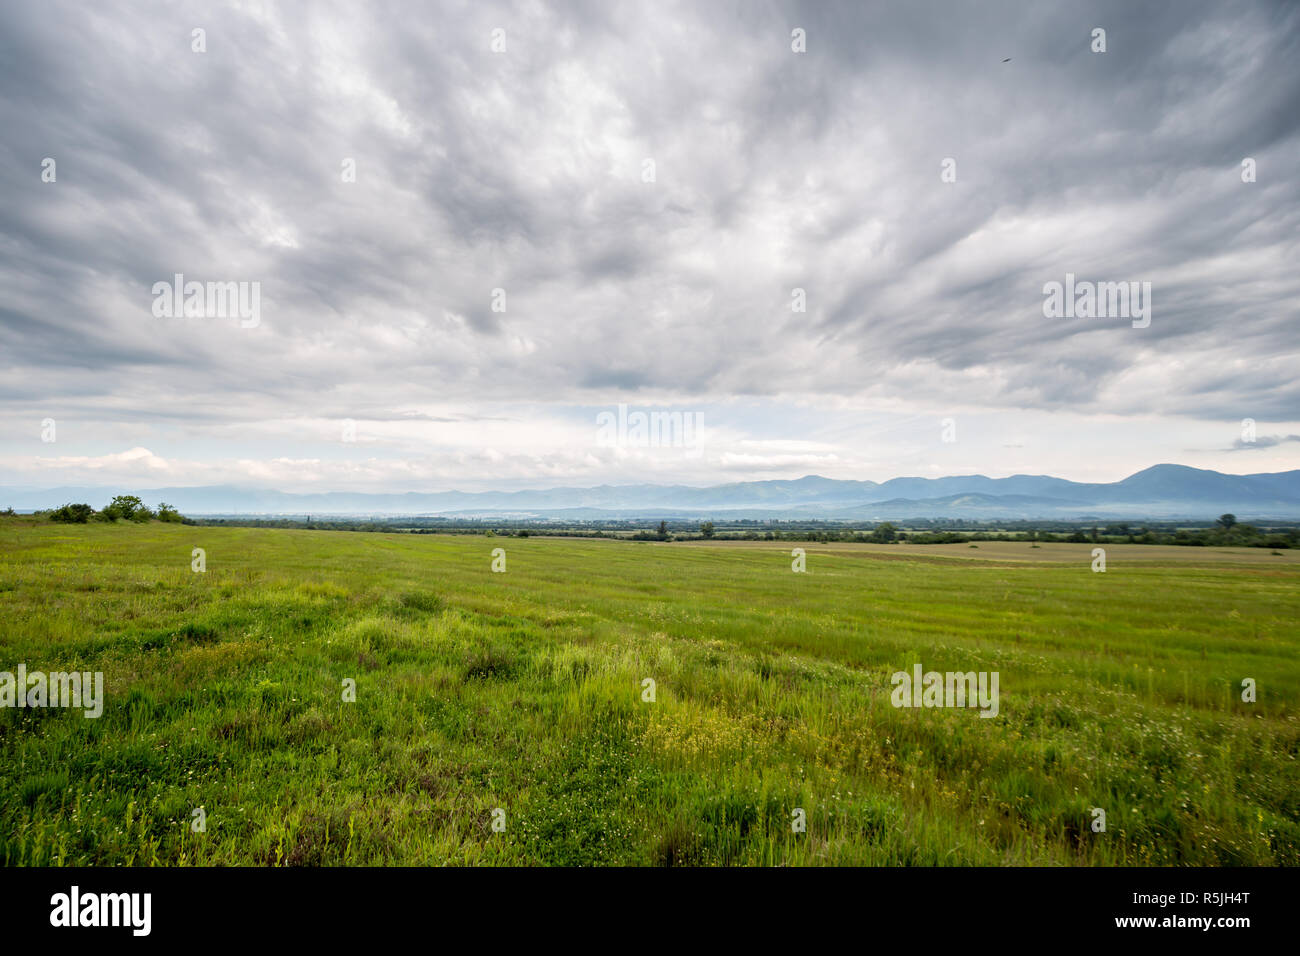 Landscape of the rose valley near Kazanlak, Bulgaria - Stock Image